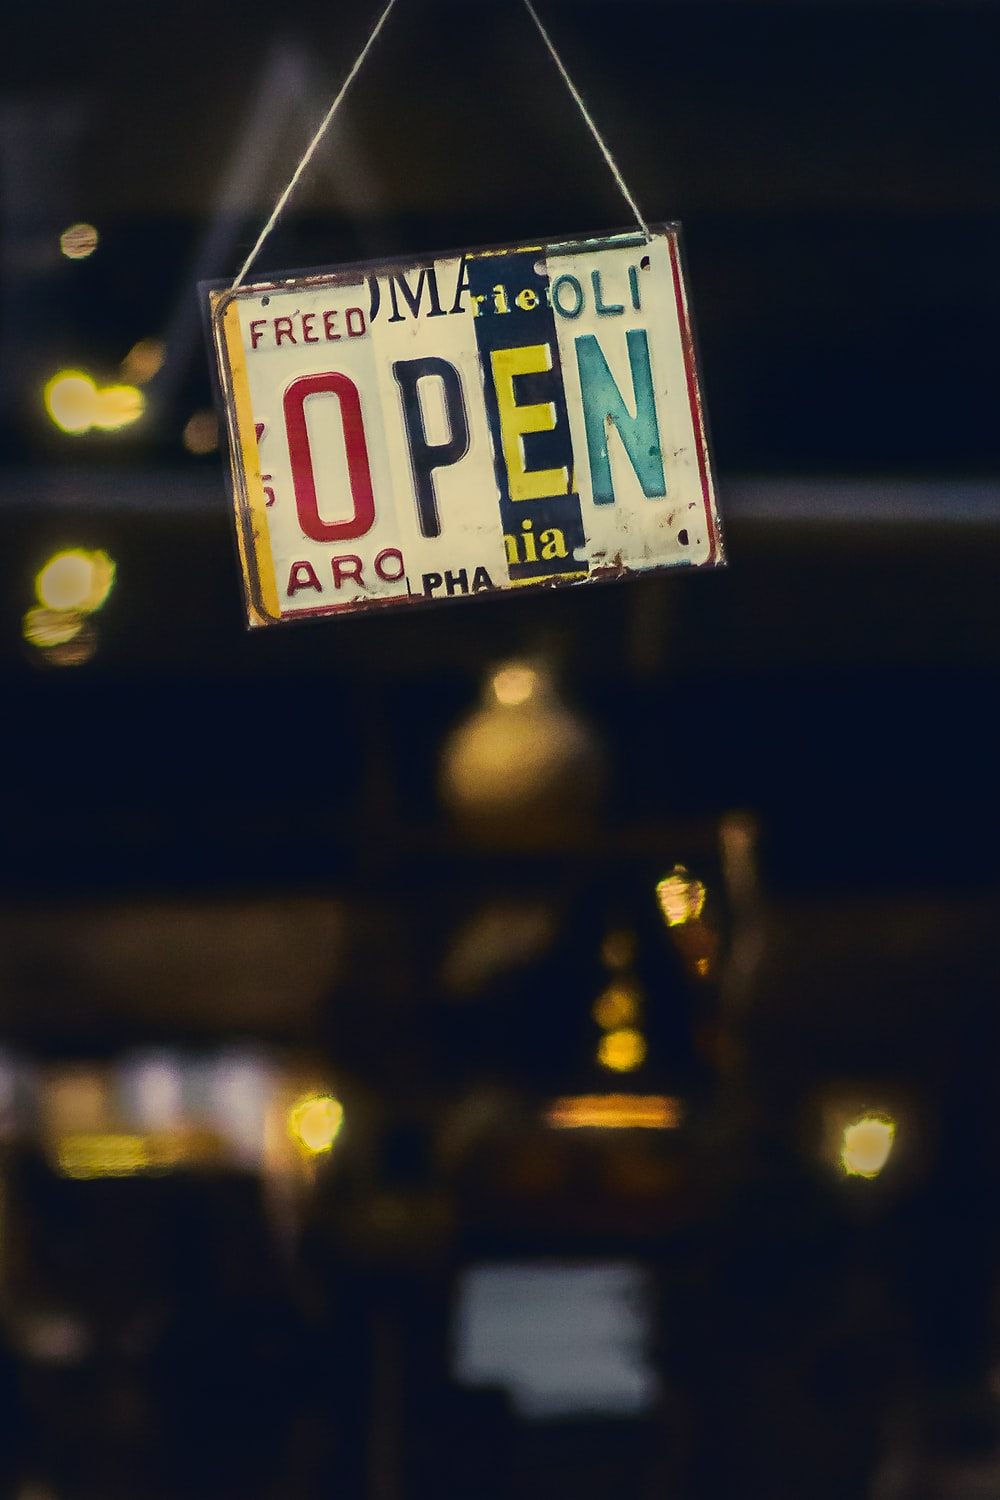 selective focus photography of licensed plate with open text hanged